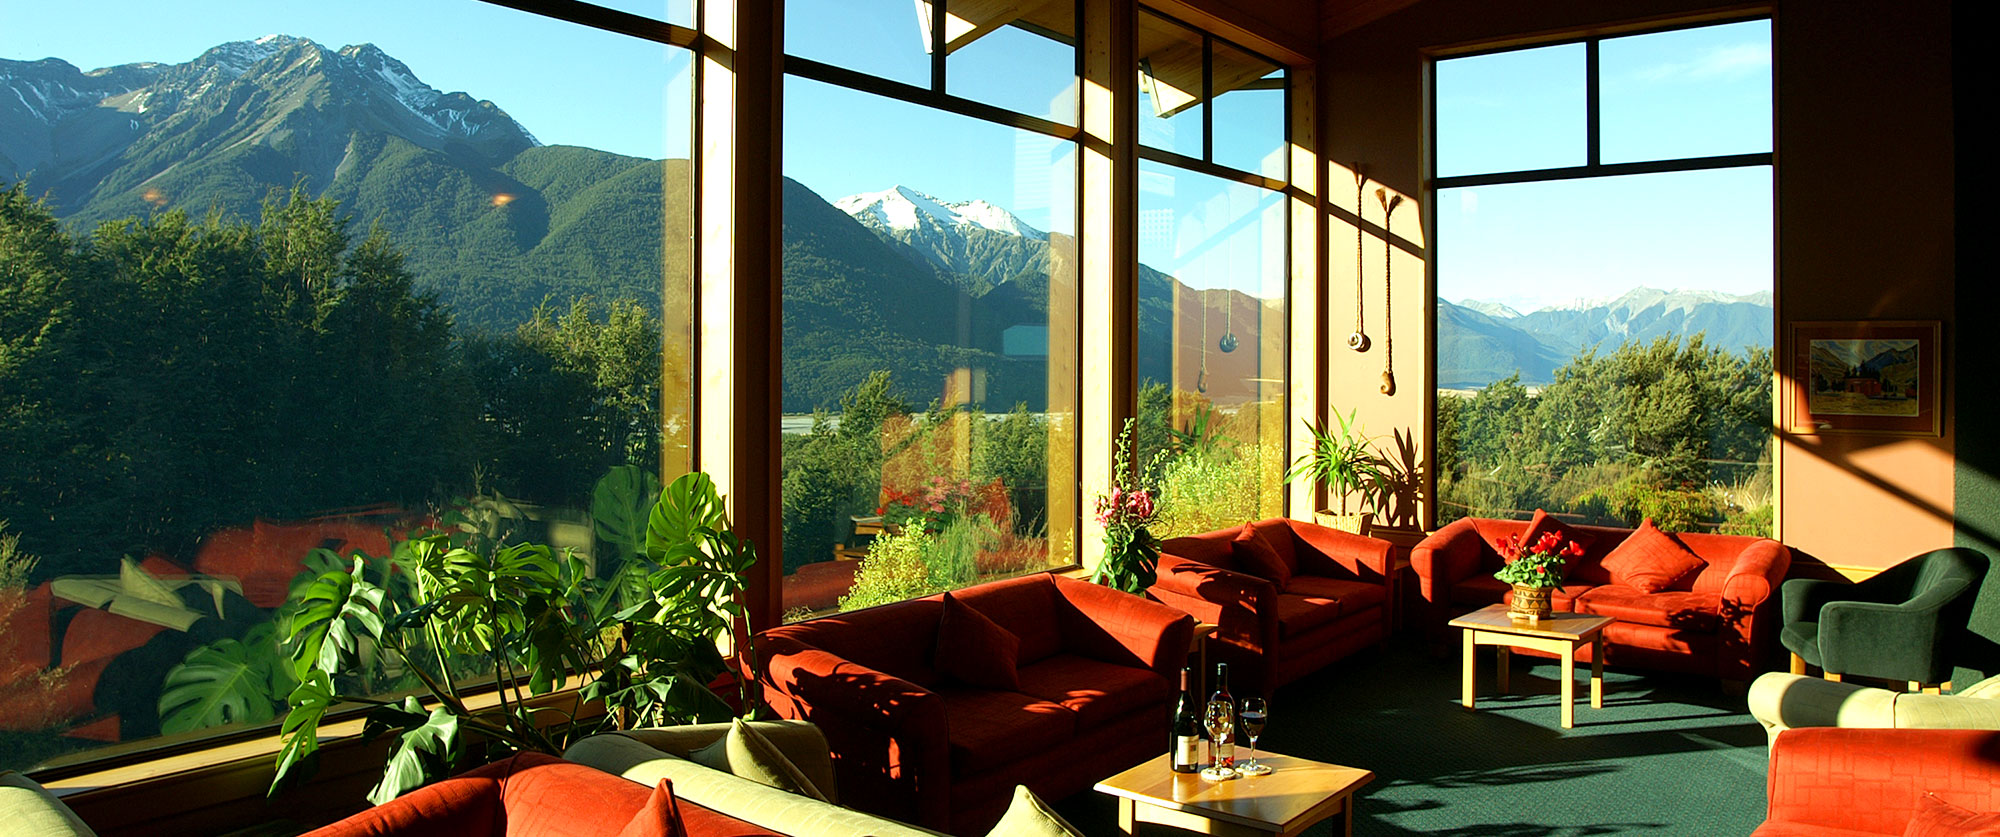 New Zealand Adventure - Penguins, Fiordlands, Wilderness - Wildnerness Lodge Arthur's Pass